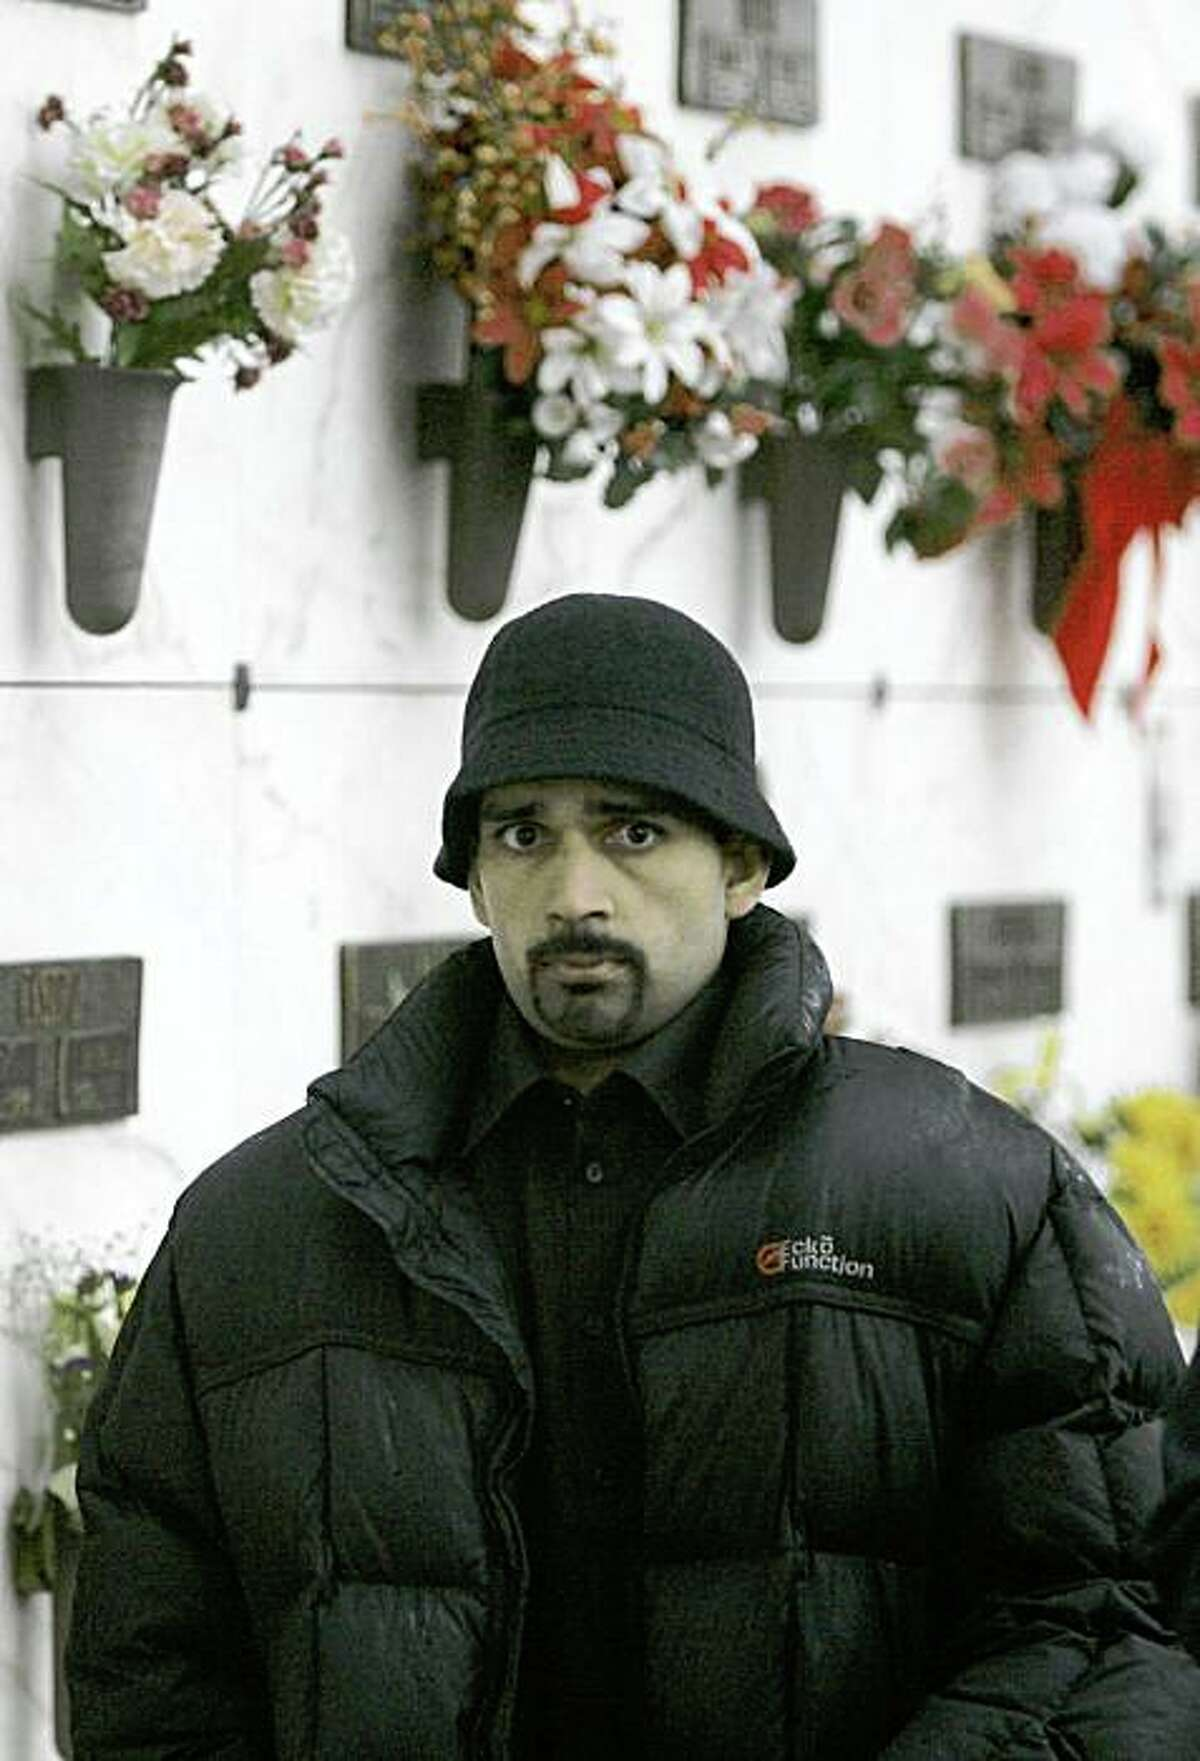 **FILE** Kulbir Dhaliwal attends the burial of his friend Carlos Sousa Jr. in San Jose, Calif., in this Tuesday, Jan. 8, 2008, file photo. Sousa Jr. was killed by a Siberian tiger that escaped its enclosure at the San Francisco Zoo on Dec. 25, 2007. Dhaliwal told police that he, his brother Paul, and Sousa Jr. had smoked pot and had